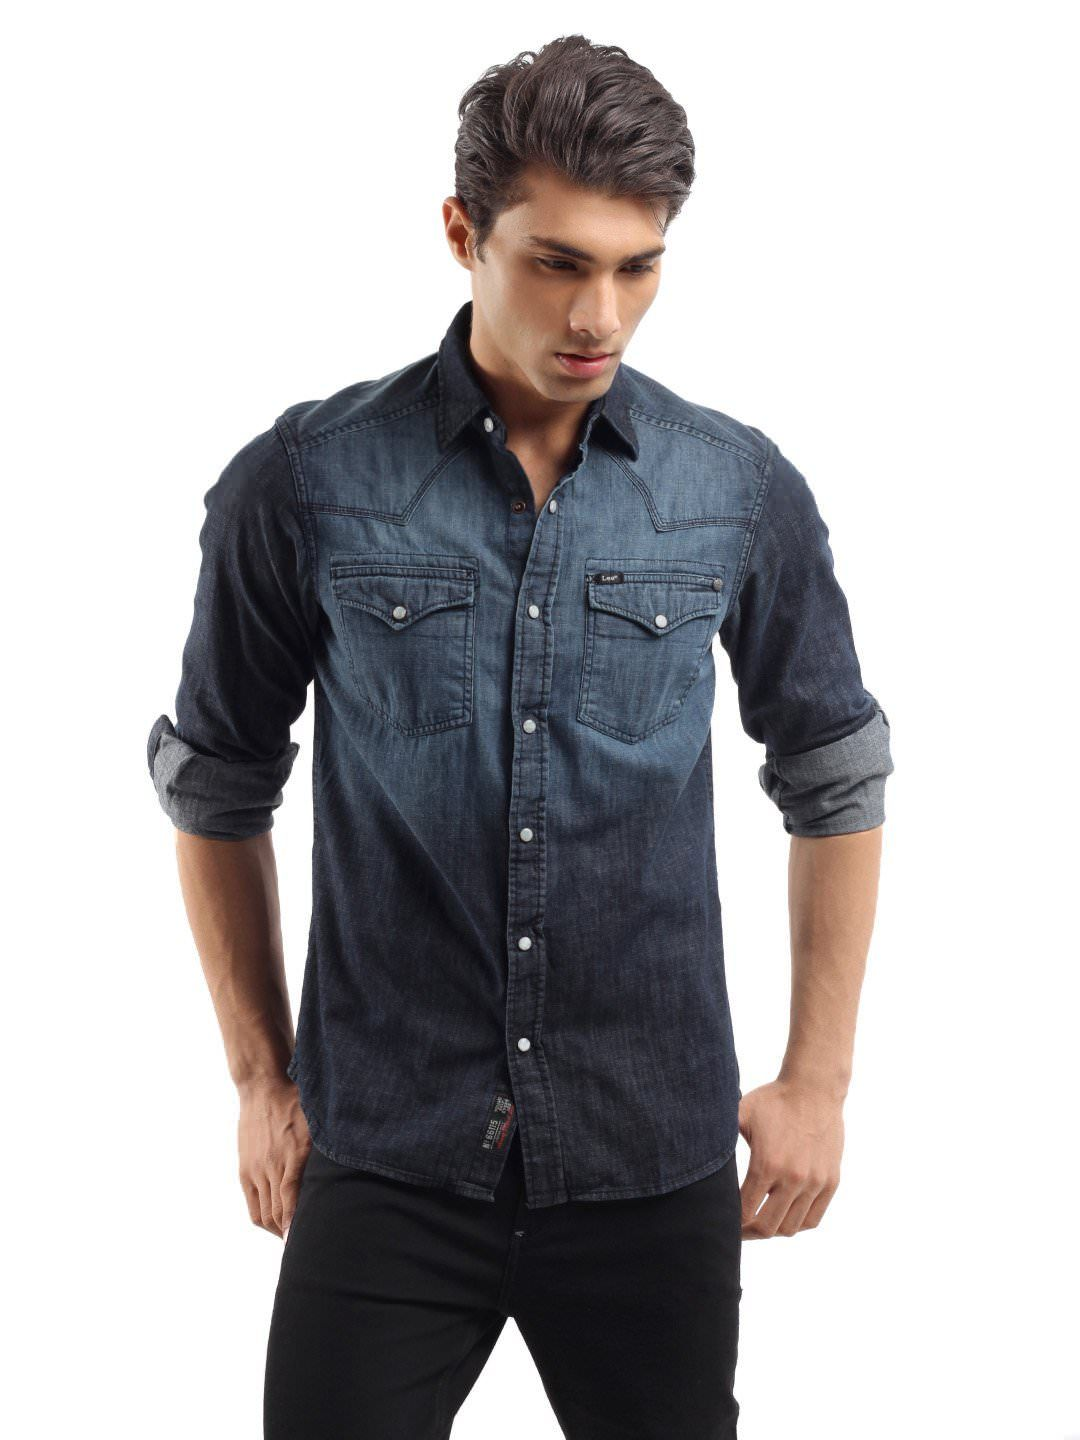 Mens fashion 2013 casual fashion for men 2013 los for In style mens shirts